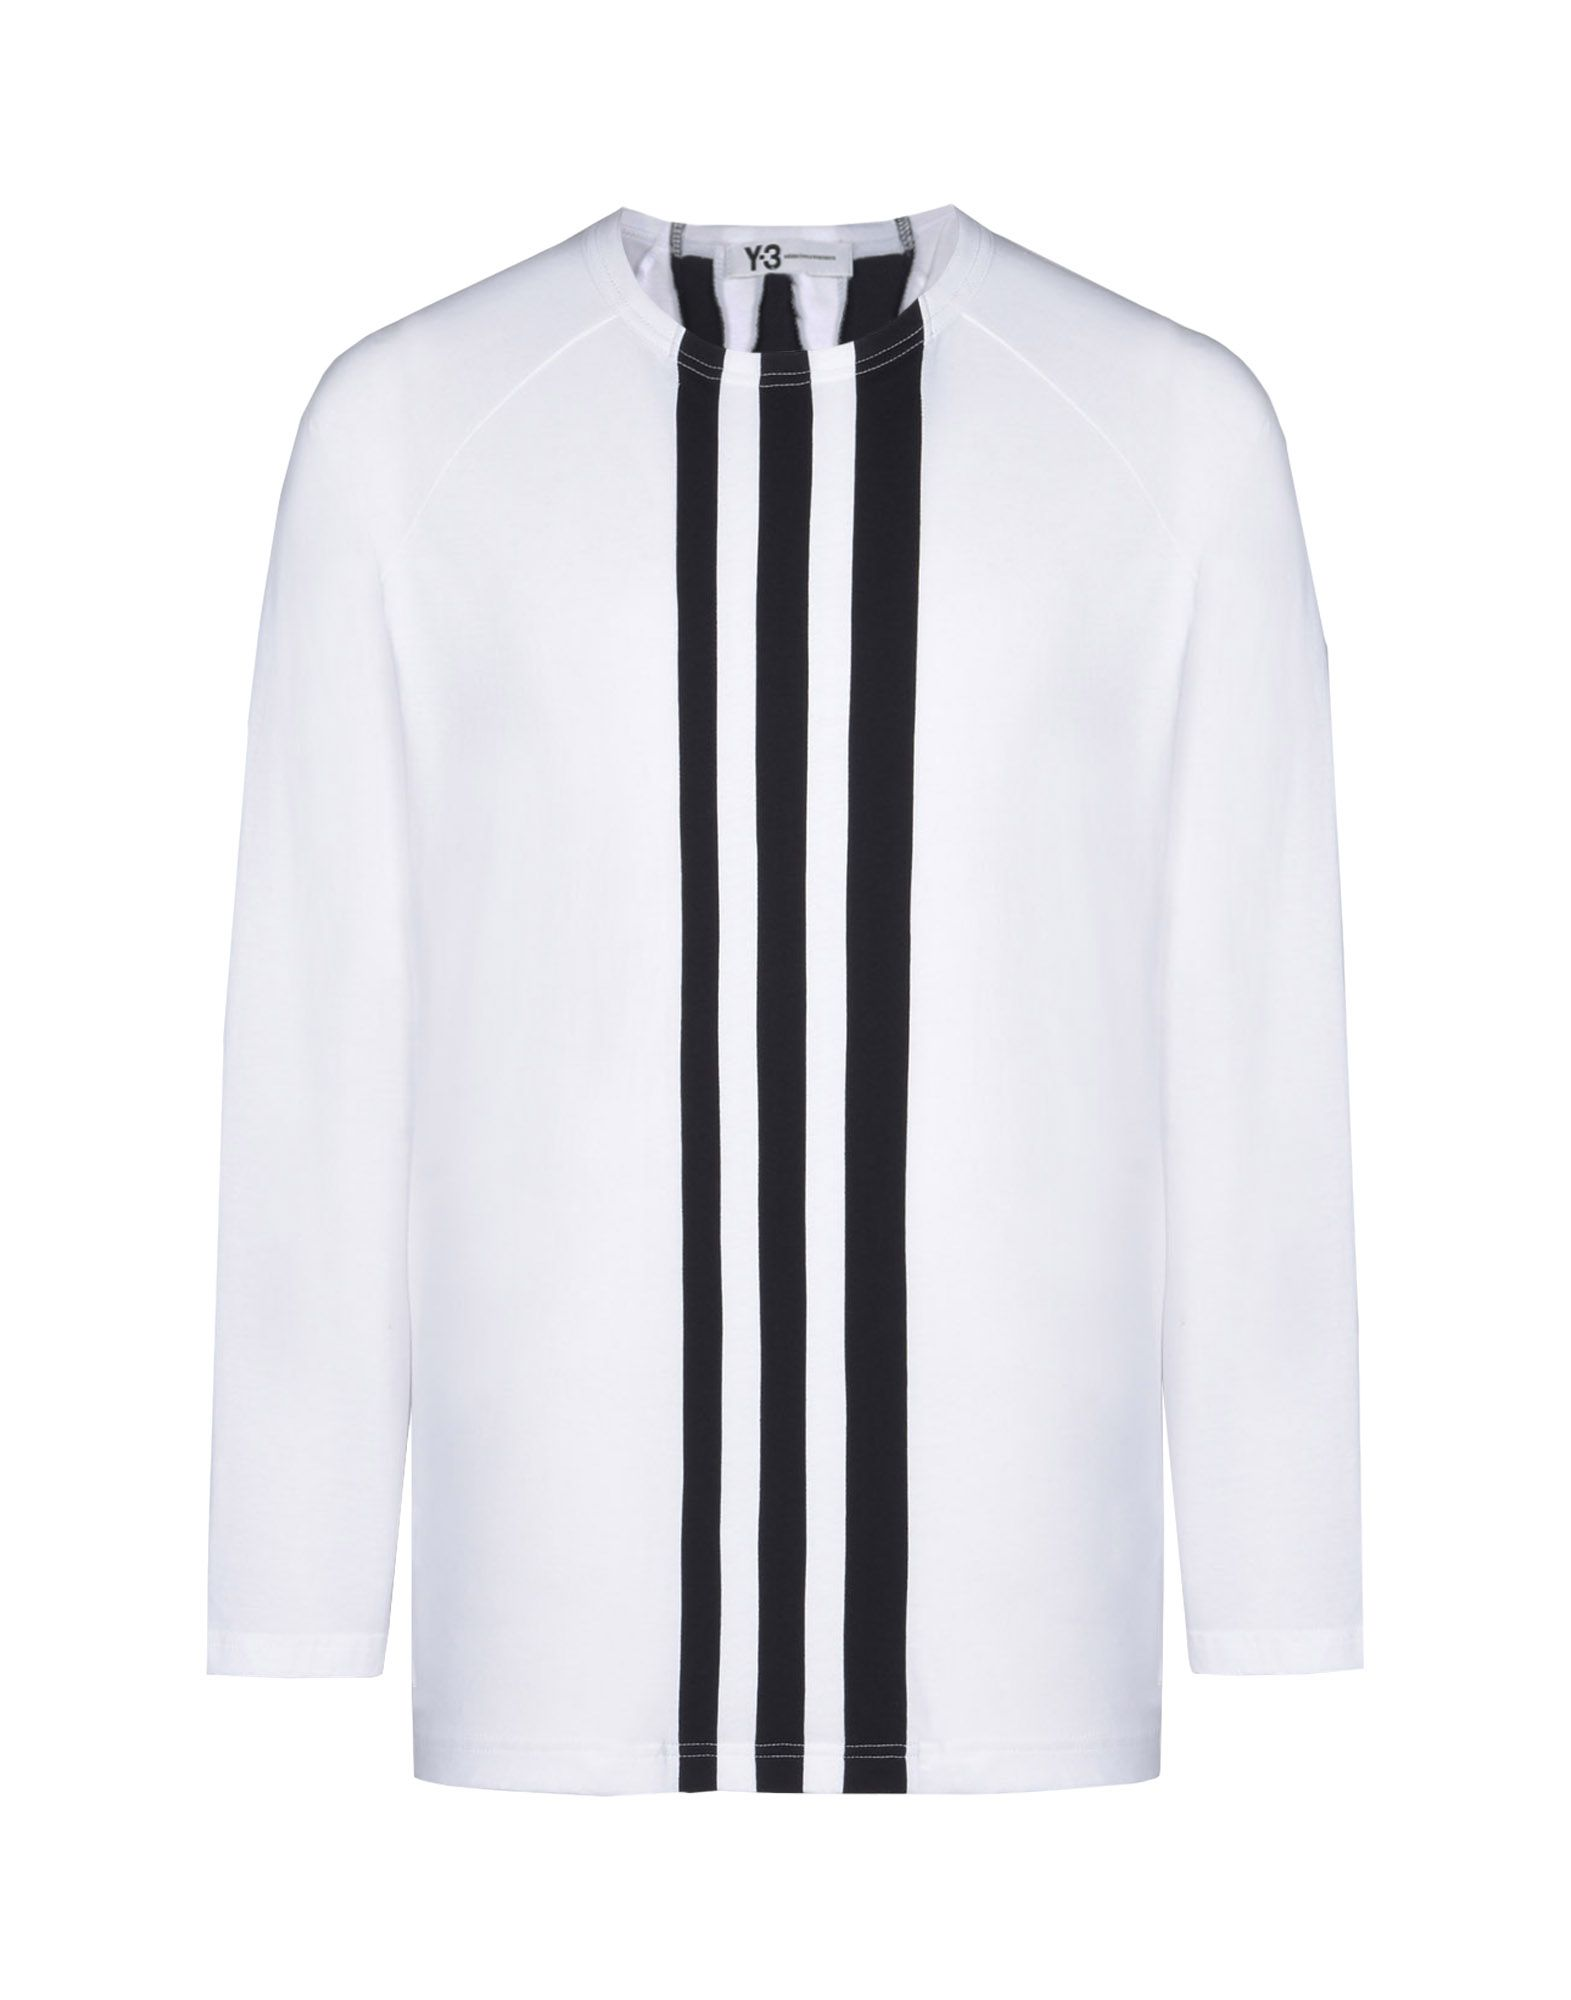 Black t shirt with white stripes - Y 3 3 Stripes Tee Tees Polos Man Y 3 Adidas